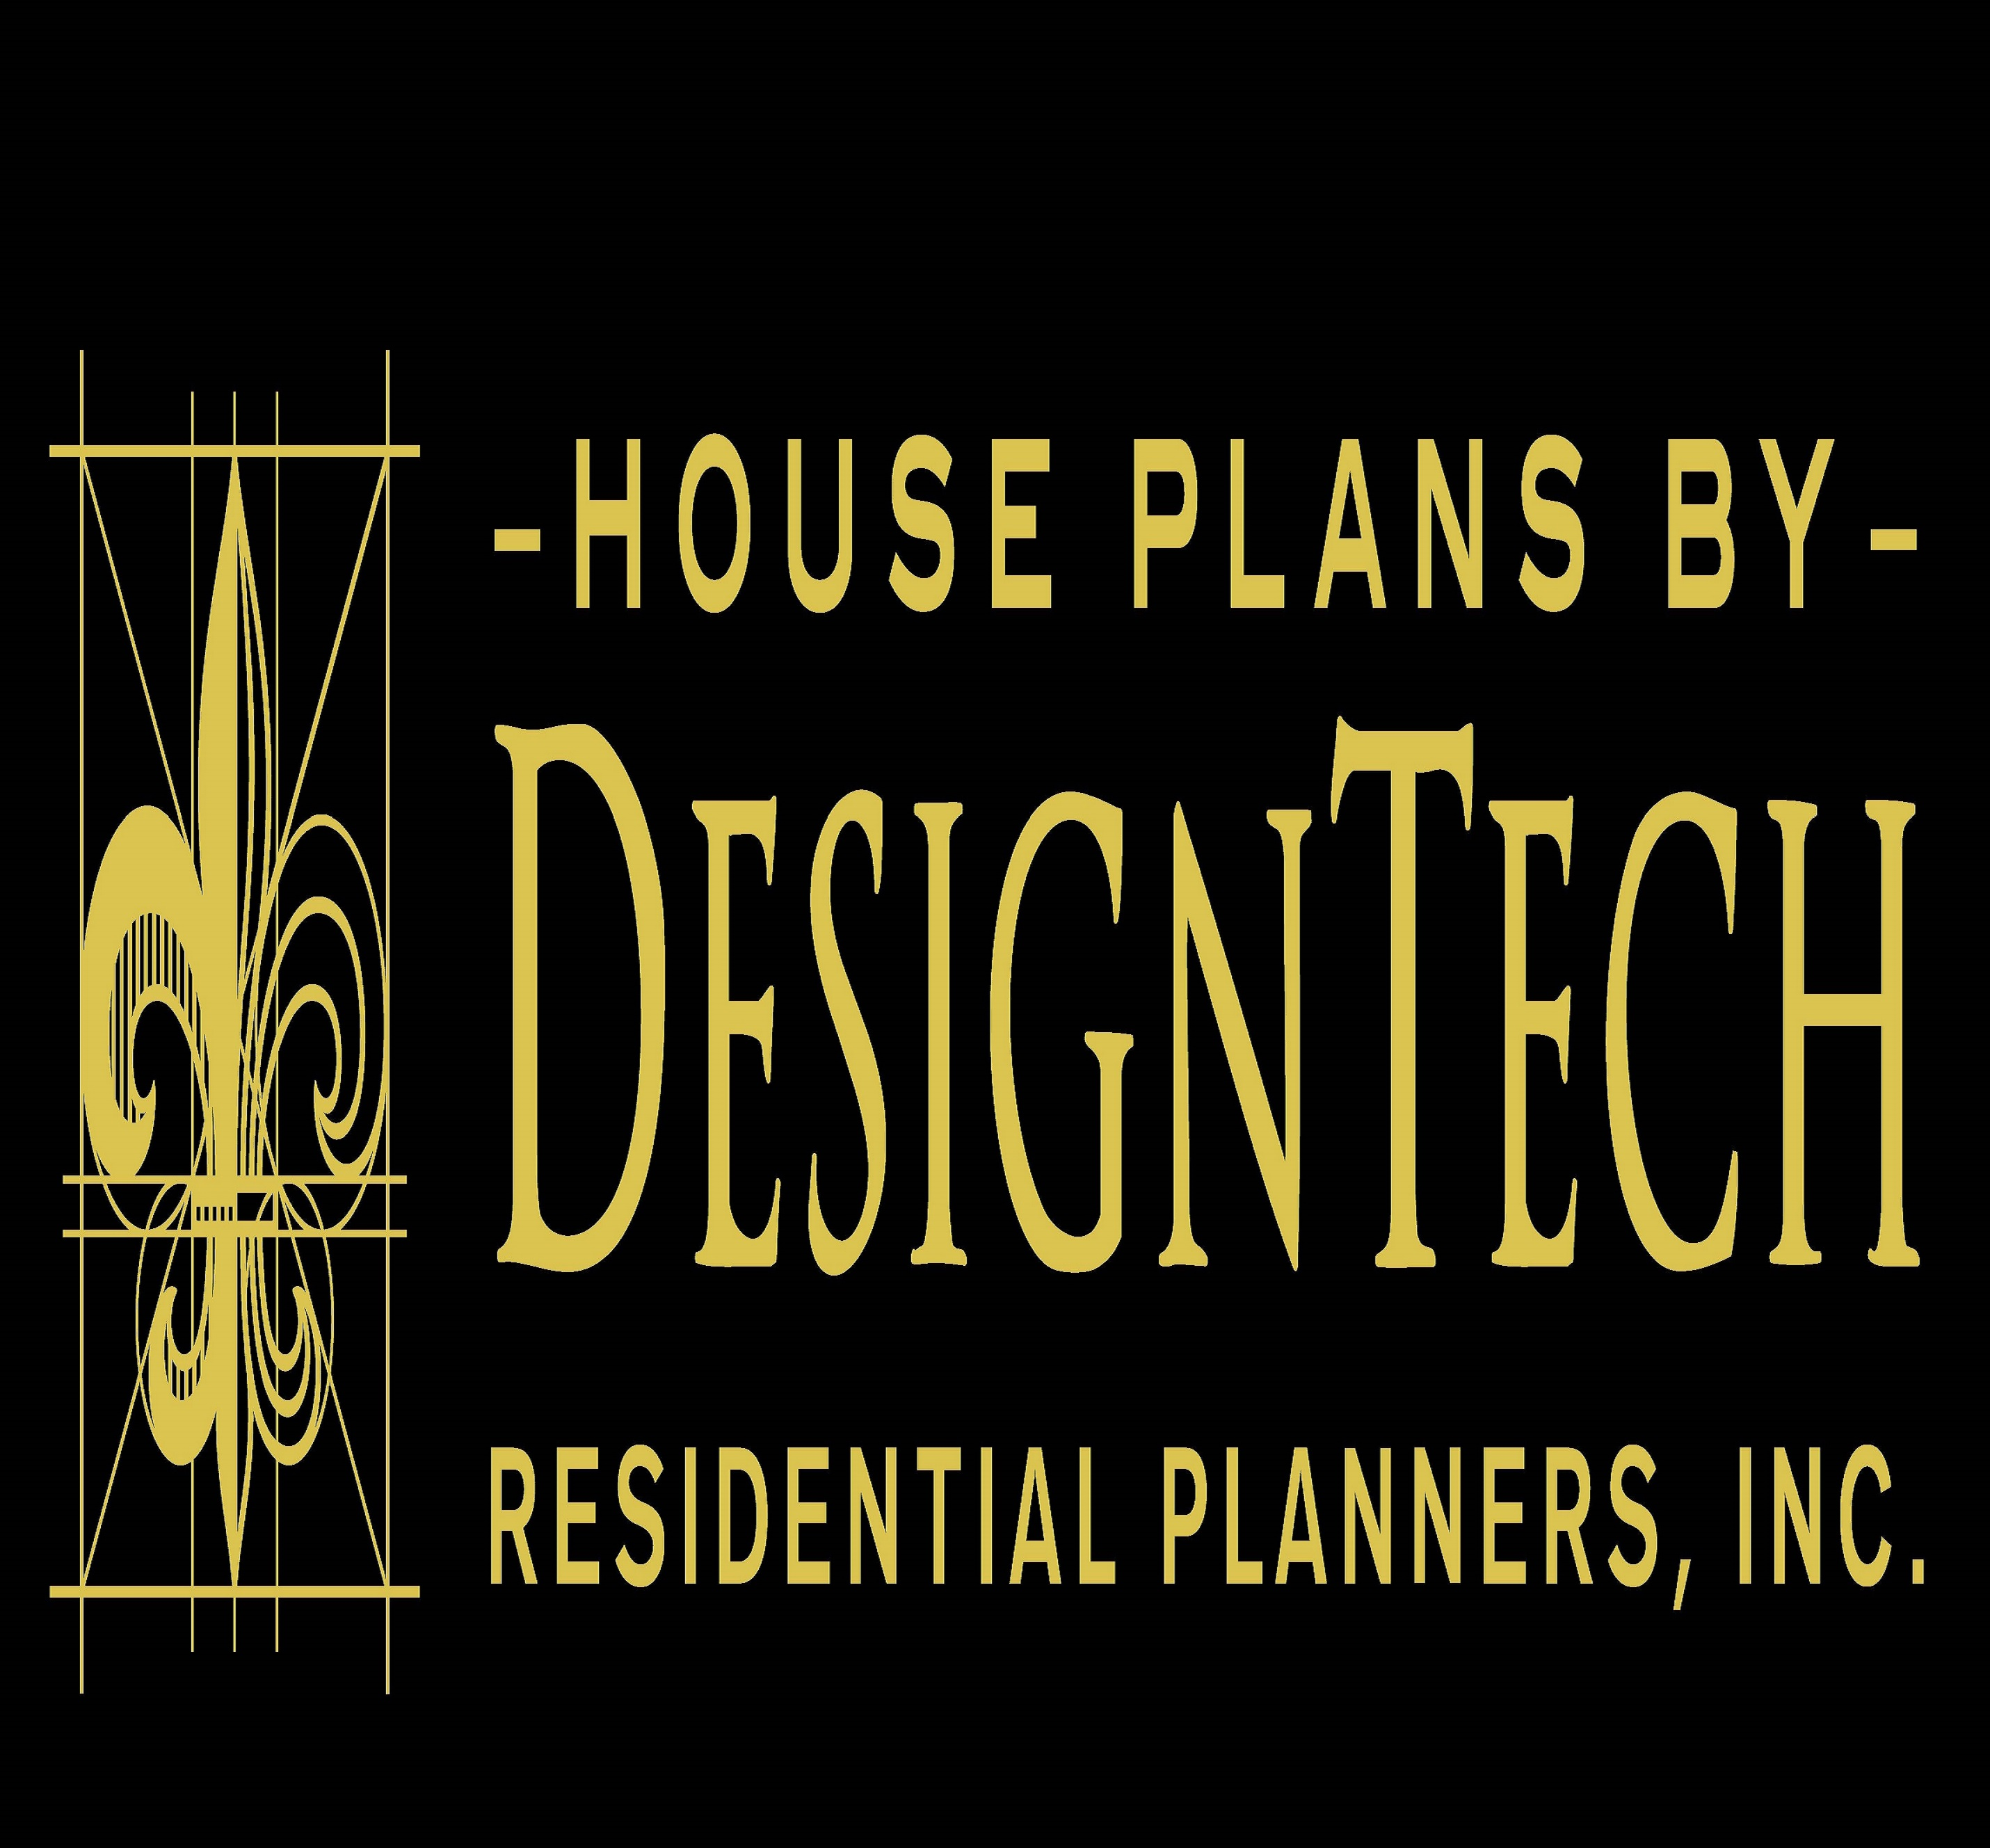 DesignTech Residential Planners, Inc. | Ross Hebert Business Logo